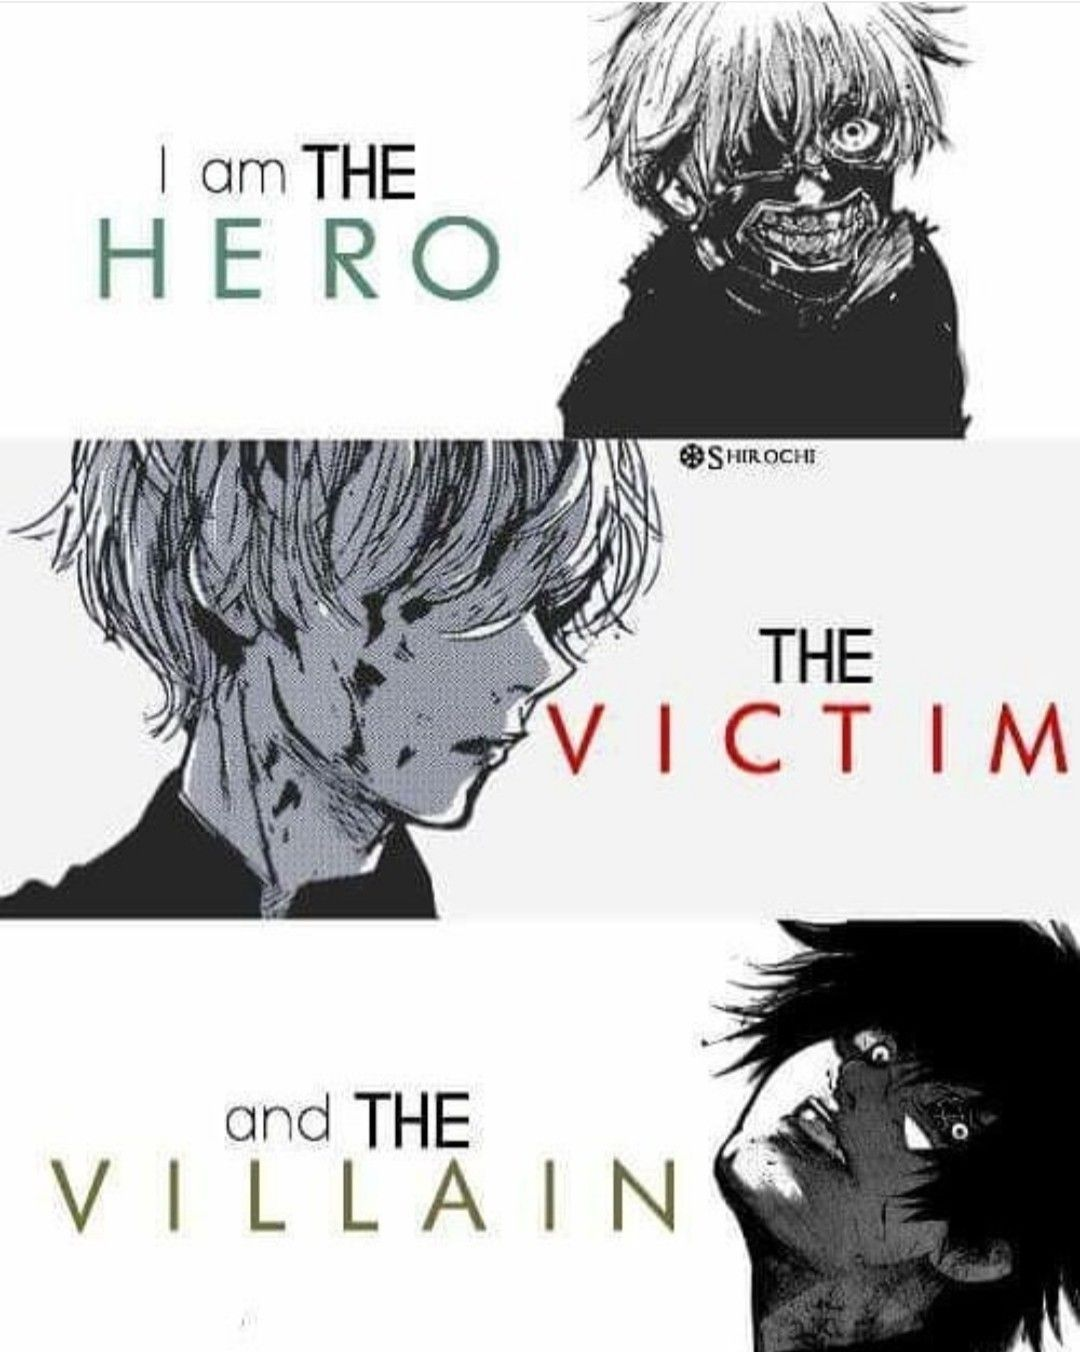 Pin by Veronica on Tokyo Ghoul Tokyo ghoul quotes, Tokyo